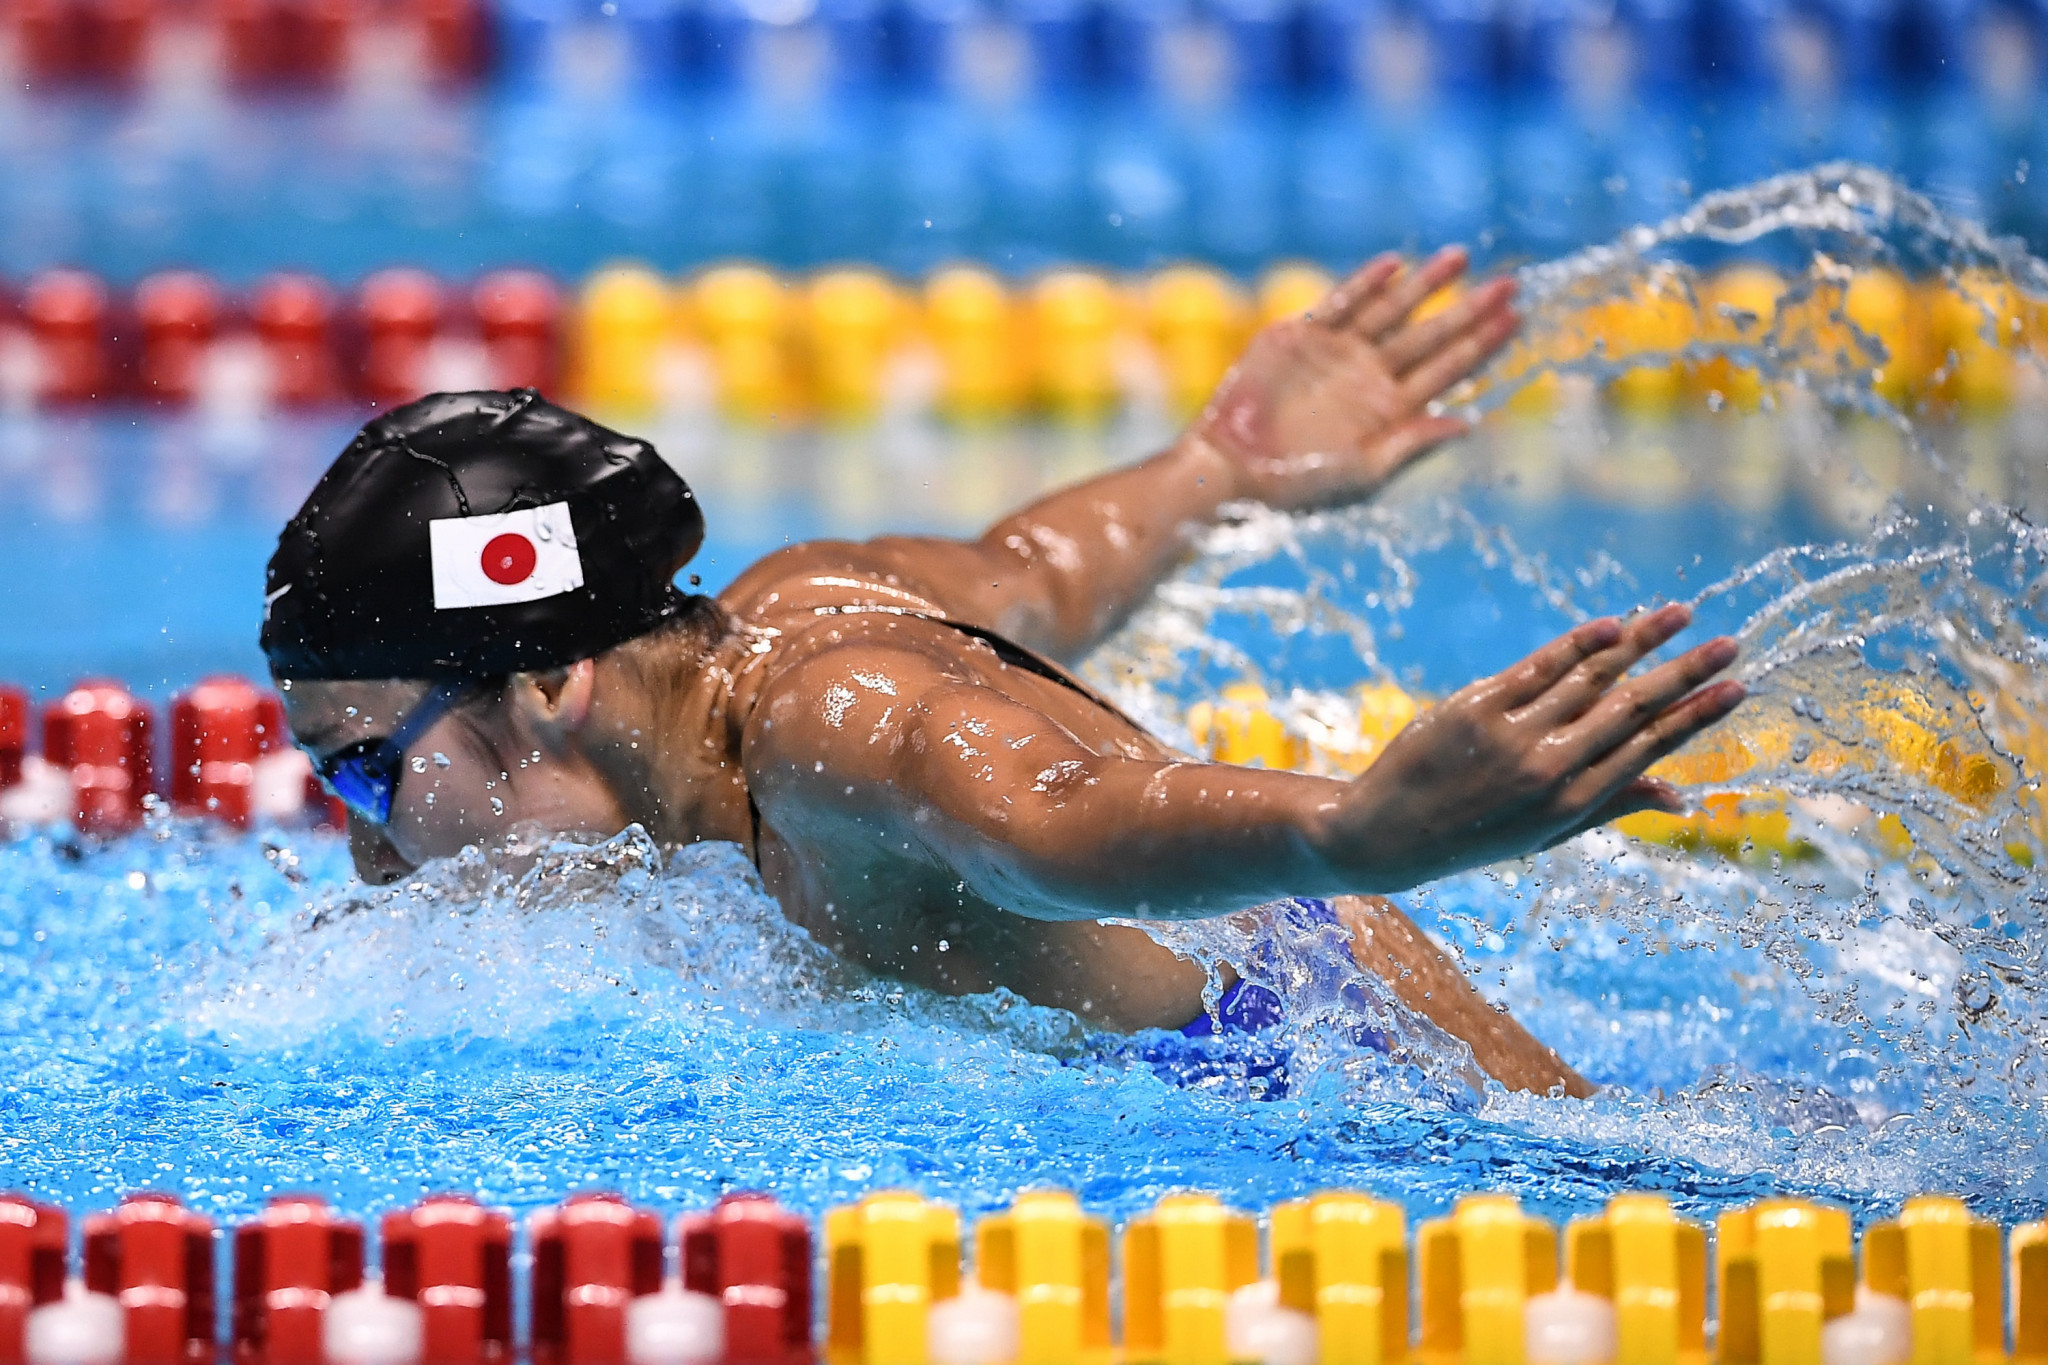 Rikako Ikee set Asian Games records in all six of her gold medal wins ©Getty Images